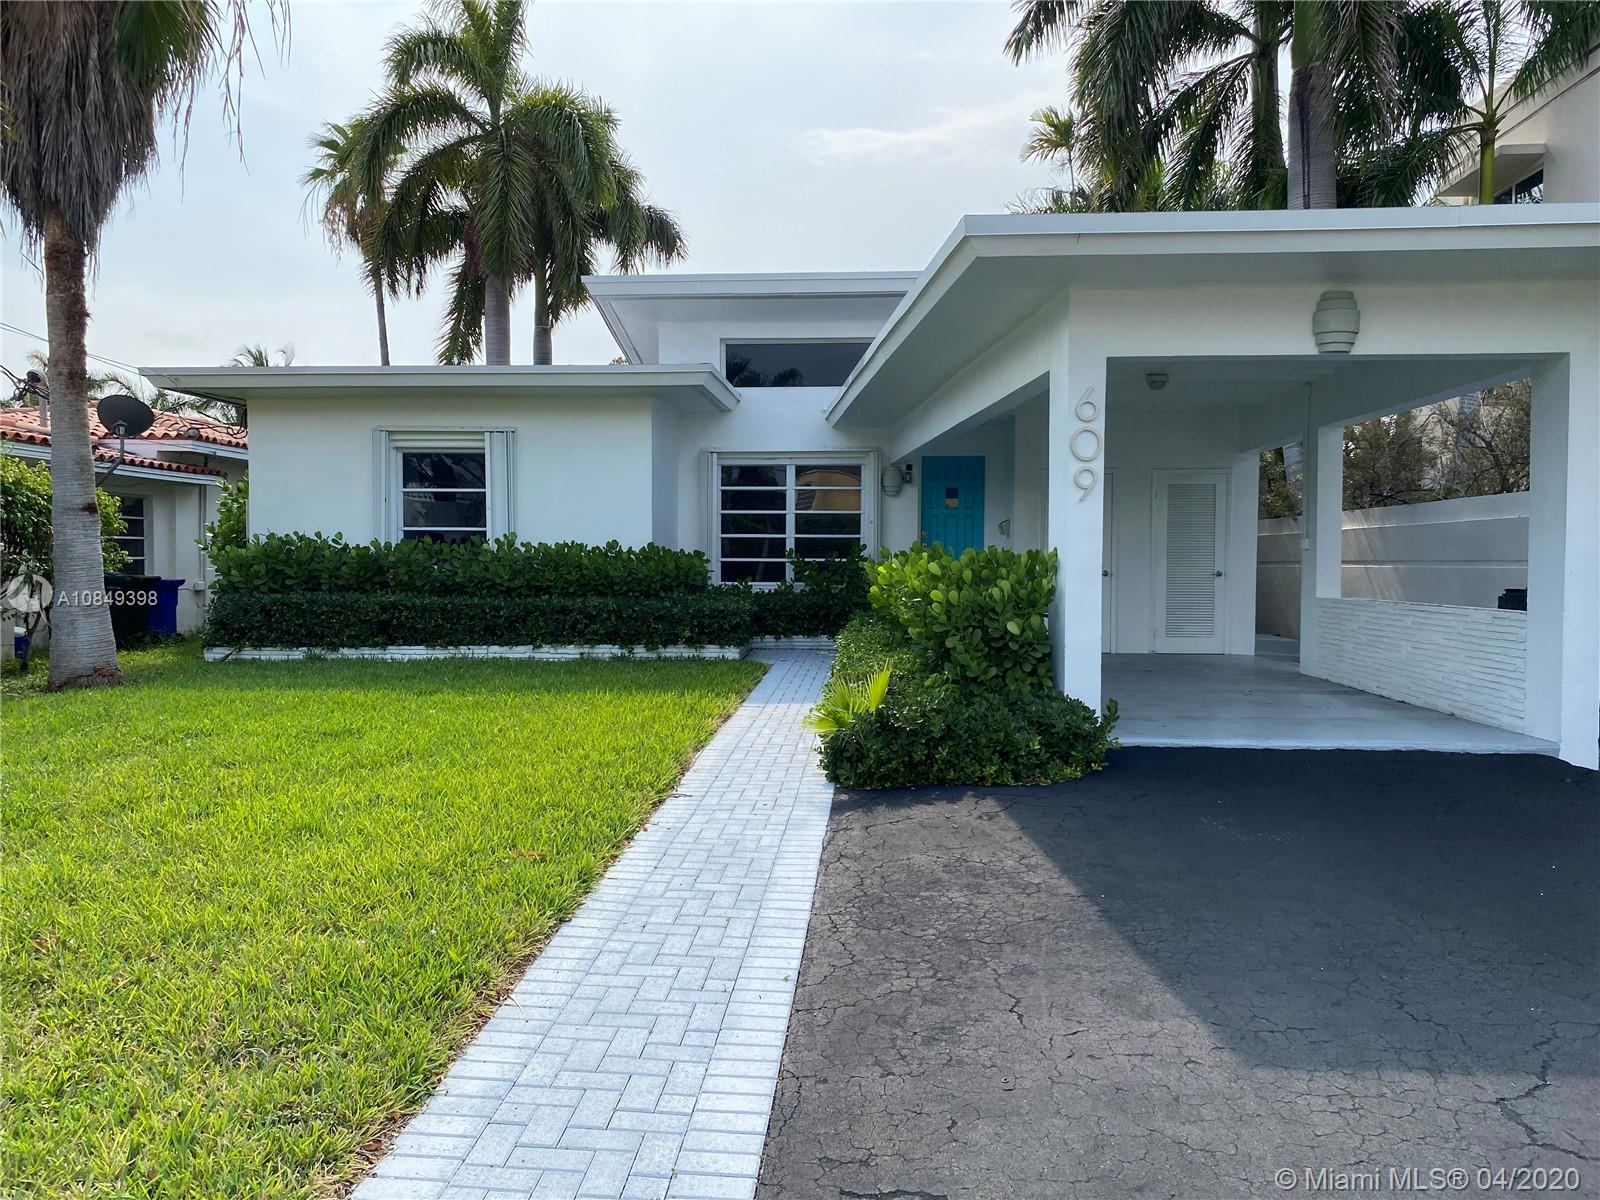 Partially renovated 2 bedroom 2 bathroom home on a 6,250 sq ft lot with 50 waterfront feet, boat dock, and direct ocean access with no fixed bridges. The home features an updated kitchen and master bath, new roof installed in January 2018, restored terrazzo flooring throughout, and a vaulted living room ceiling with plenty of natural light. Located in Idlewyld - one of the most desirable neighborhoods off Las Olas Blvd.